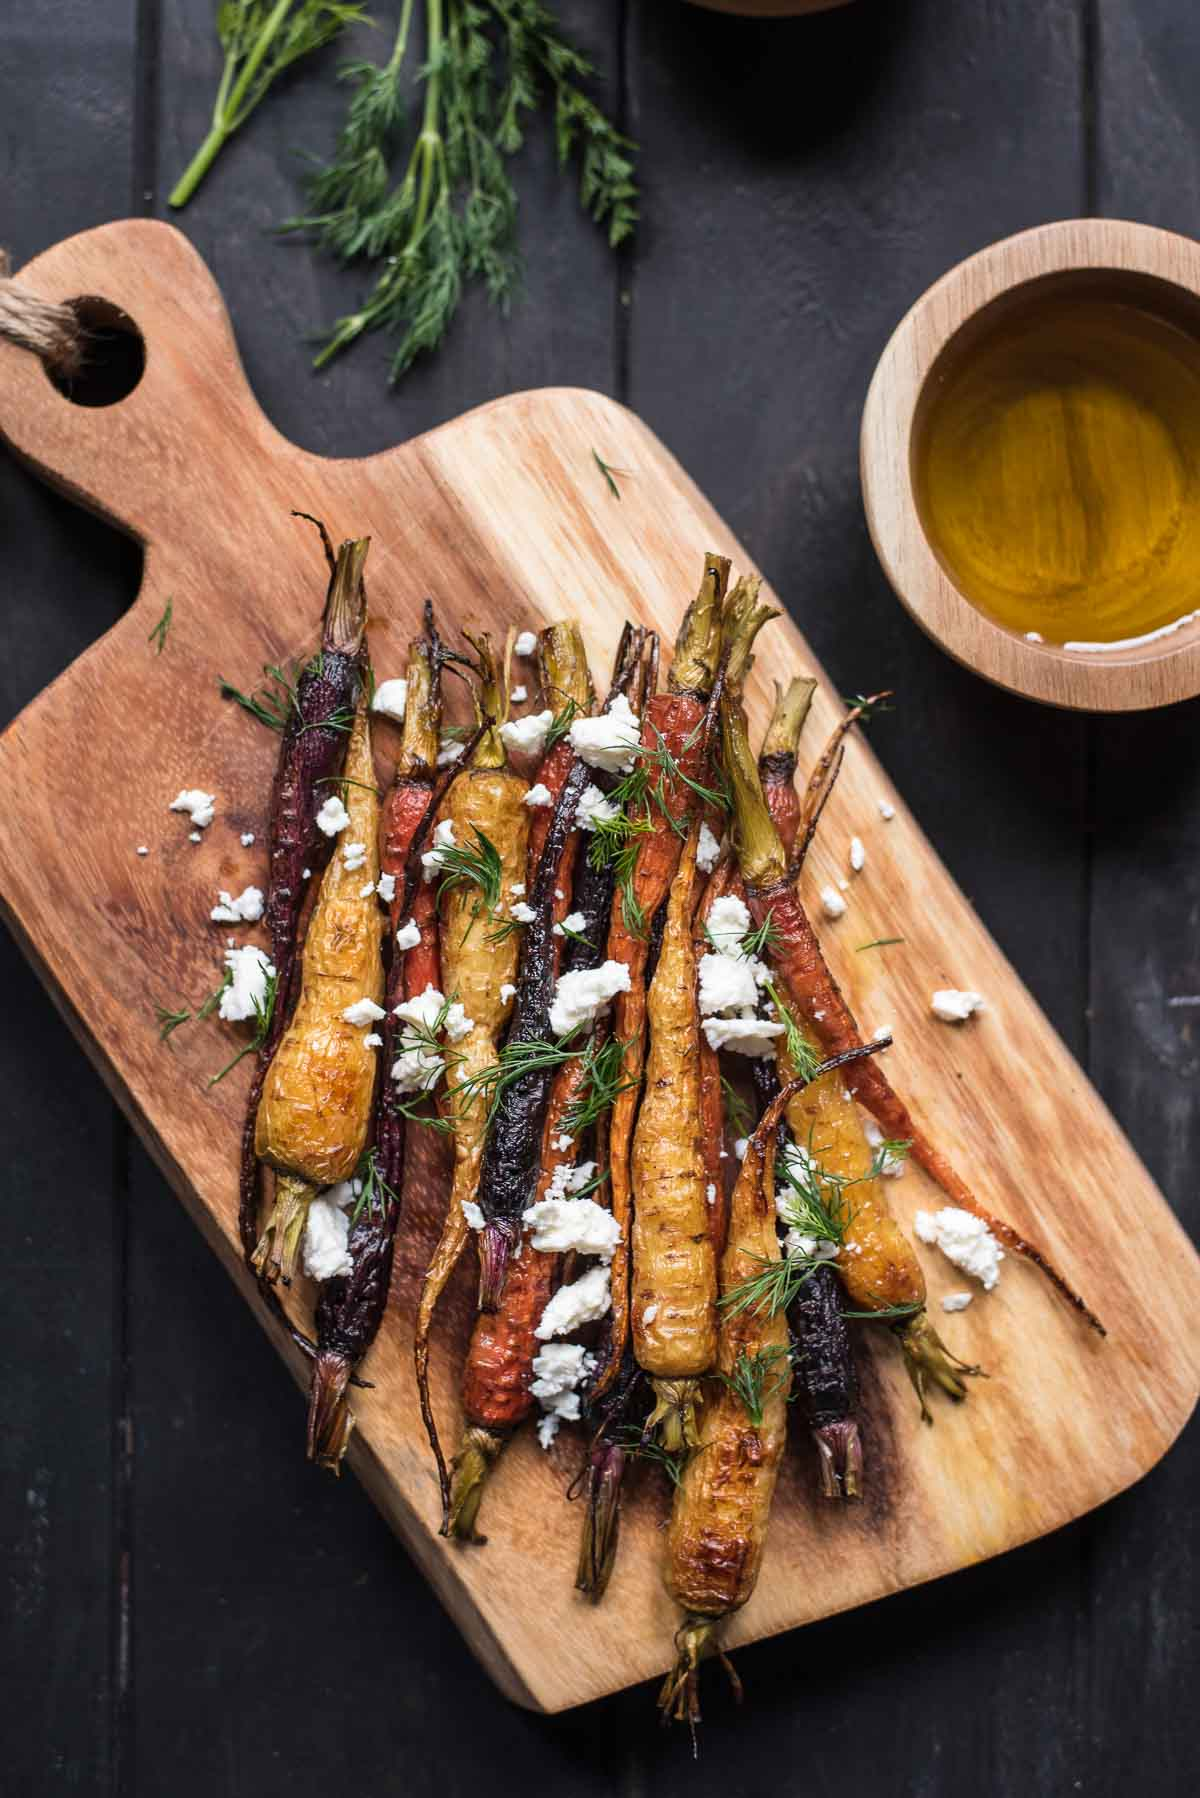 This Roasted Carrot Salad is served warm with a simple vinaigrette, feta, and dill. It's an easy side dish for any meal.